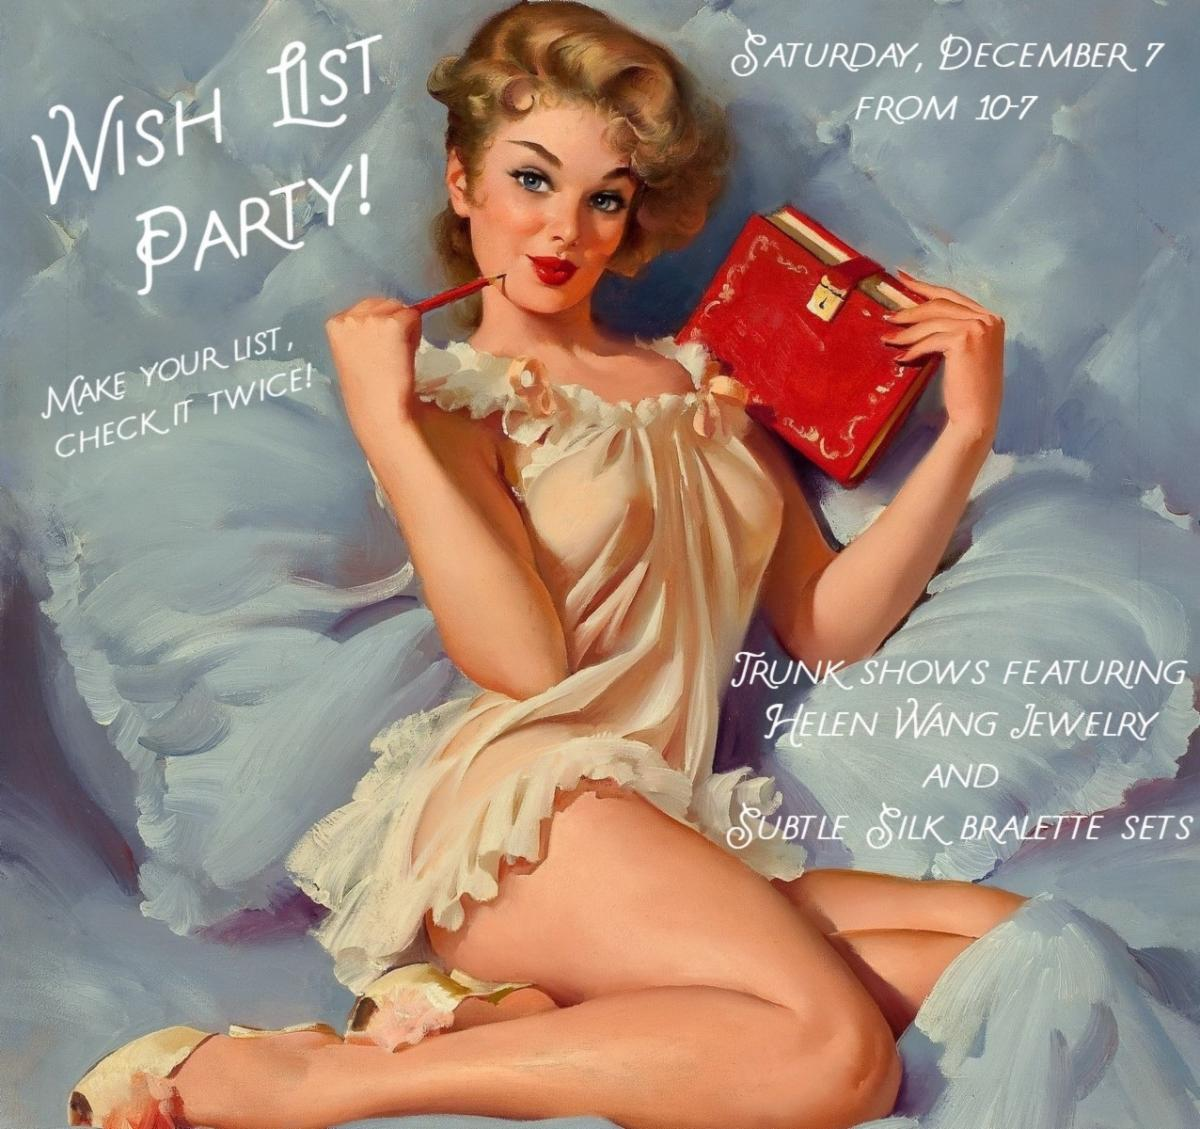 Wish List Party